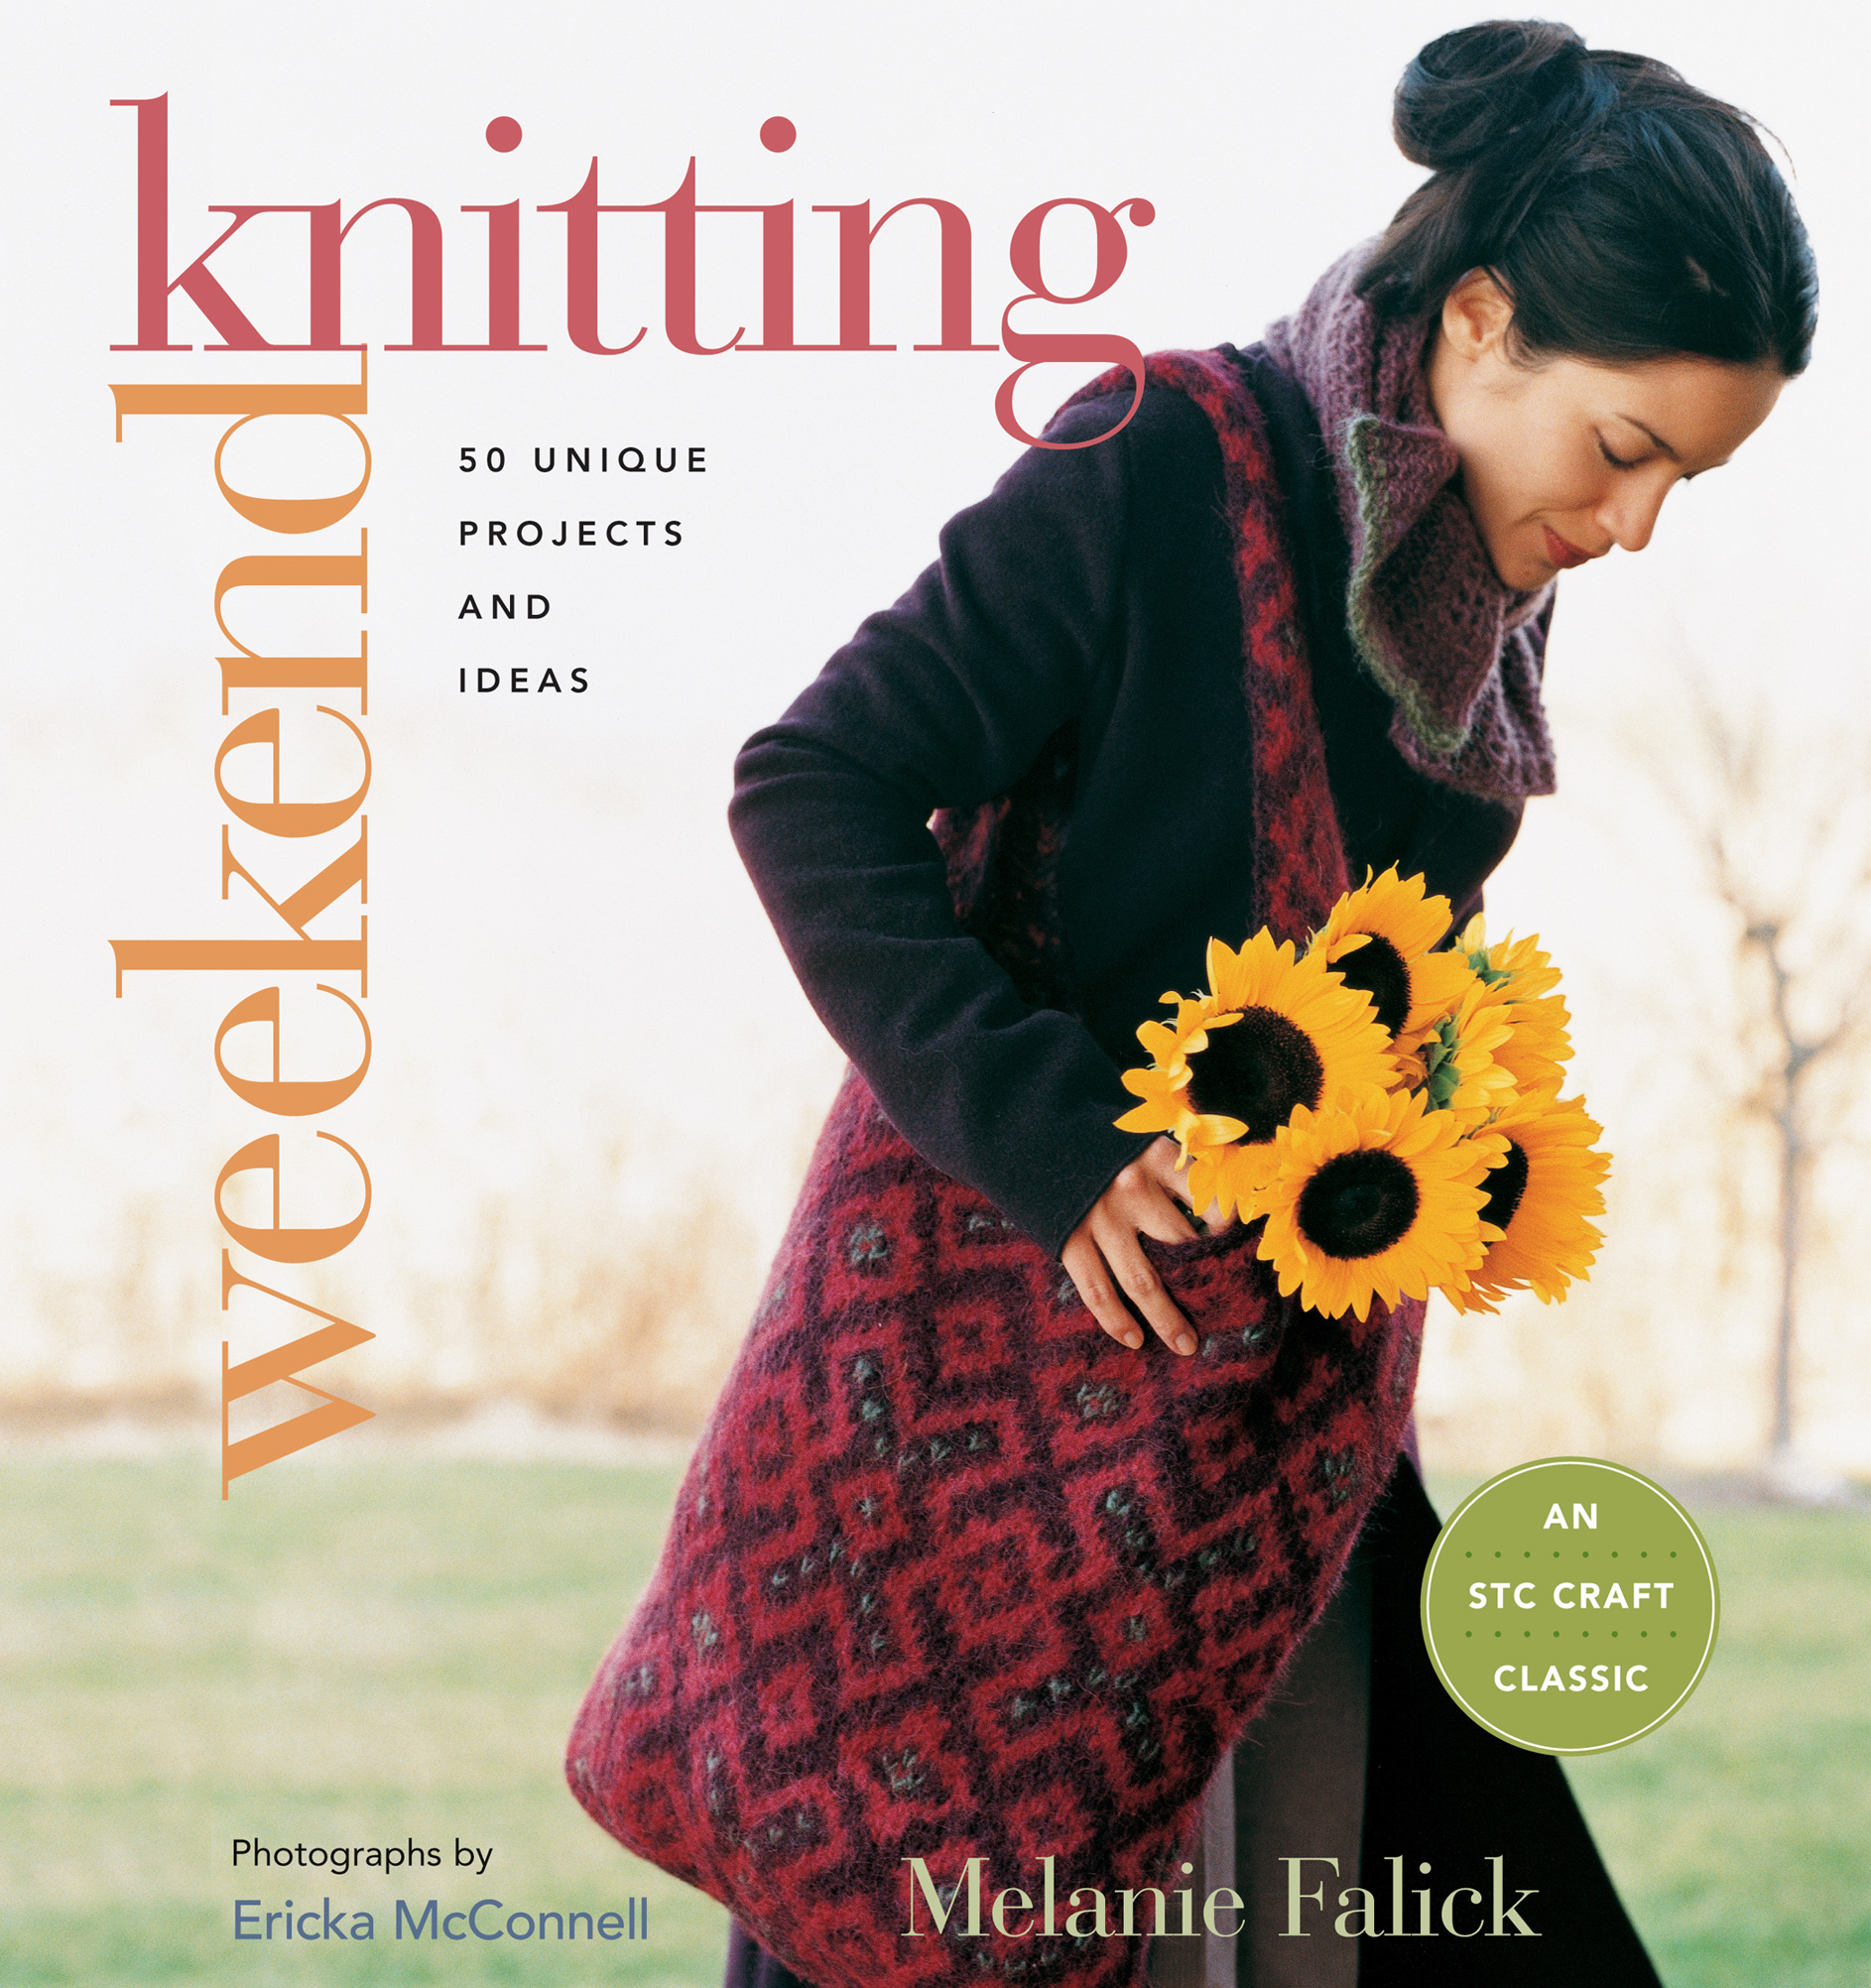 Weekend knitting 50 unique projects and ideas cover image